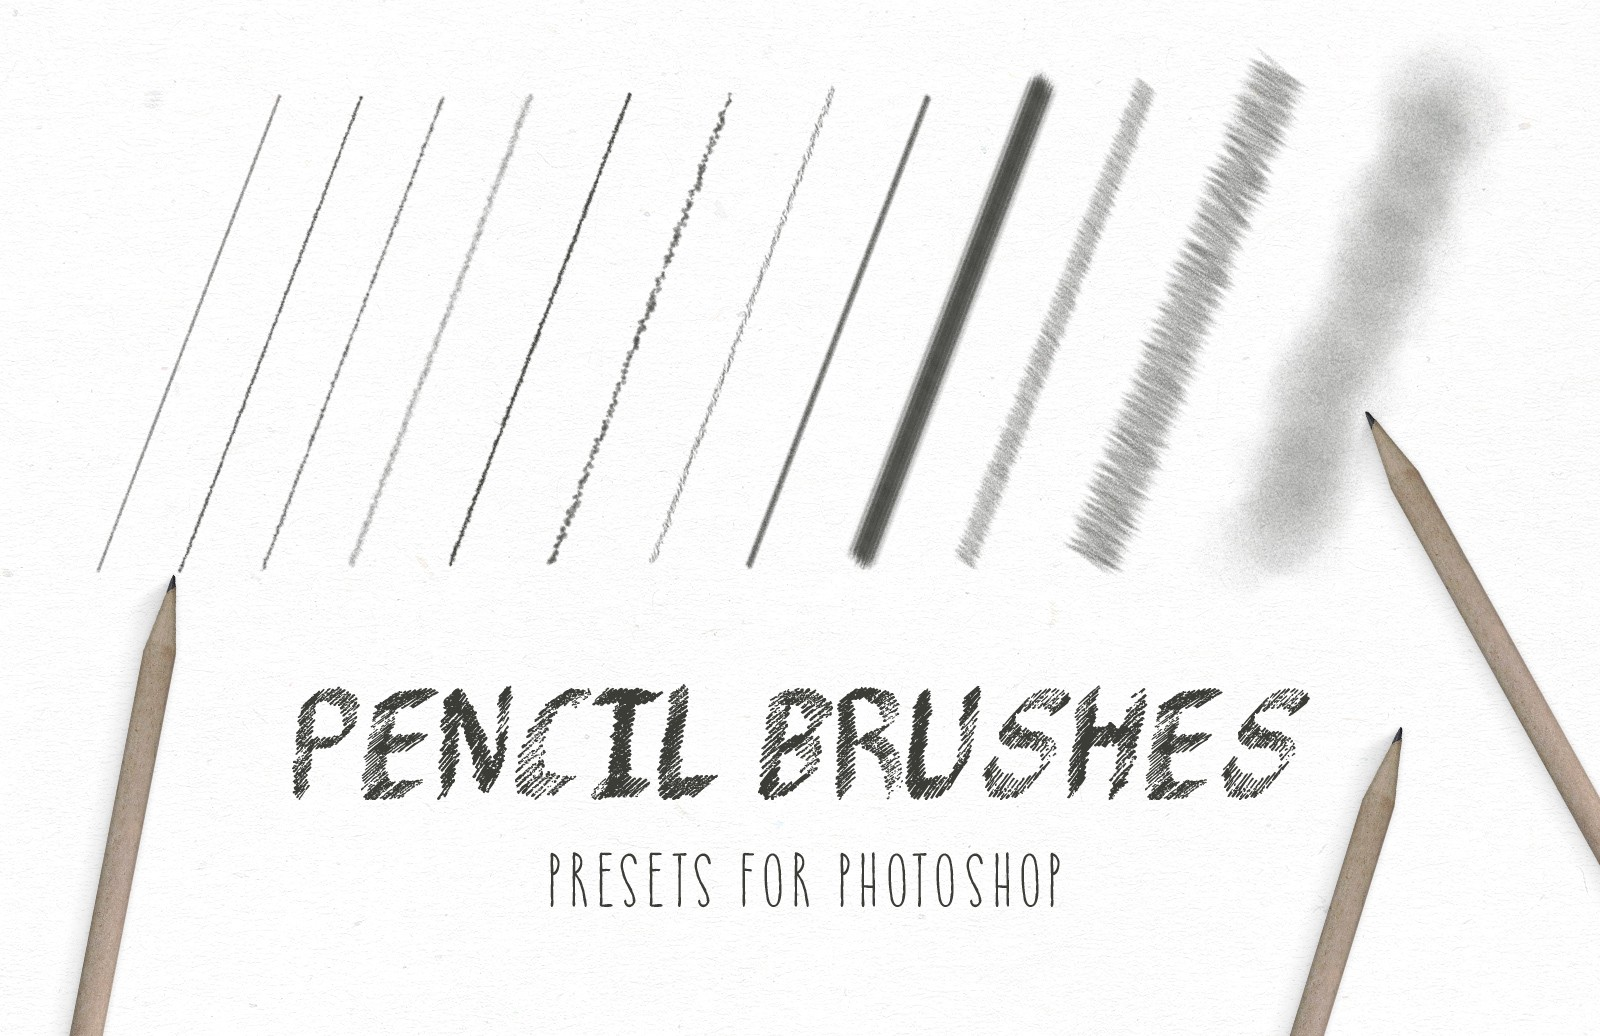 Pencil brushes for photoshop preview 1a